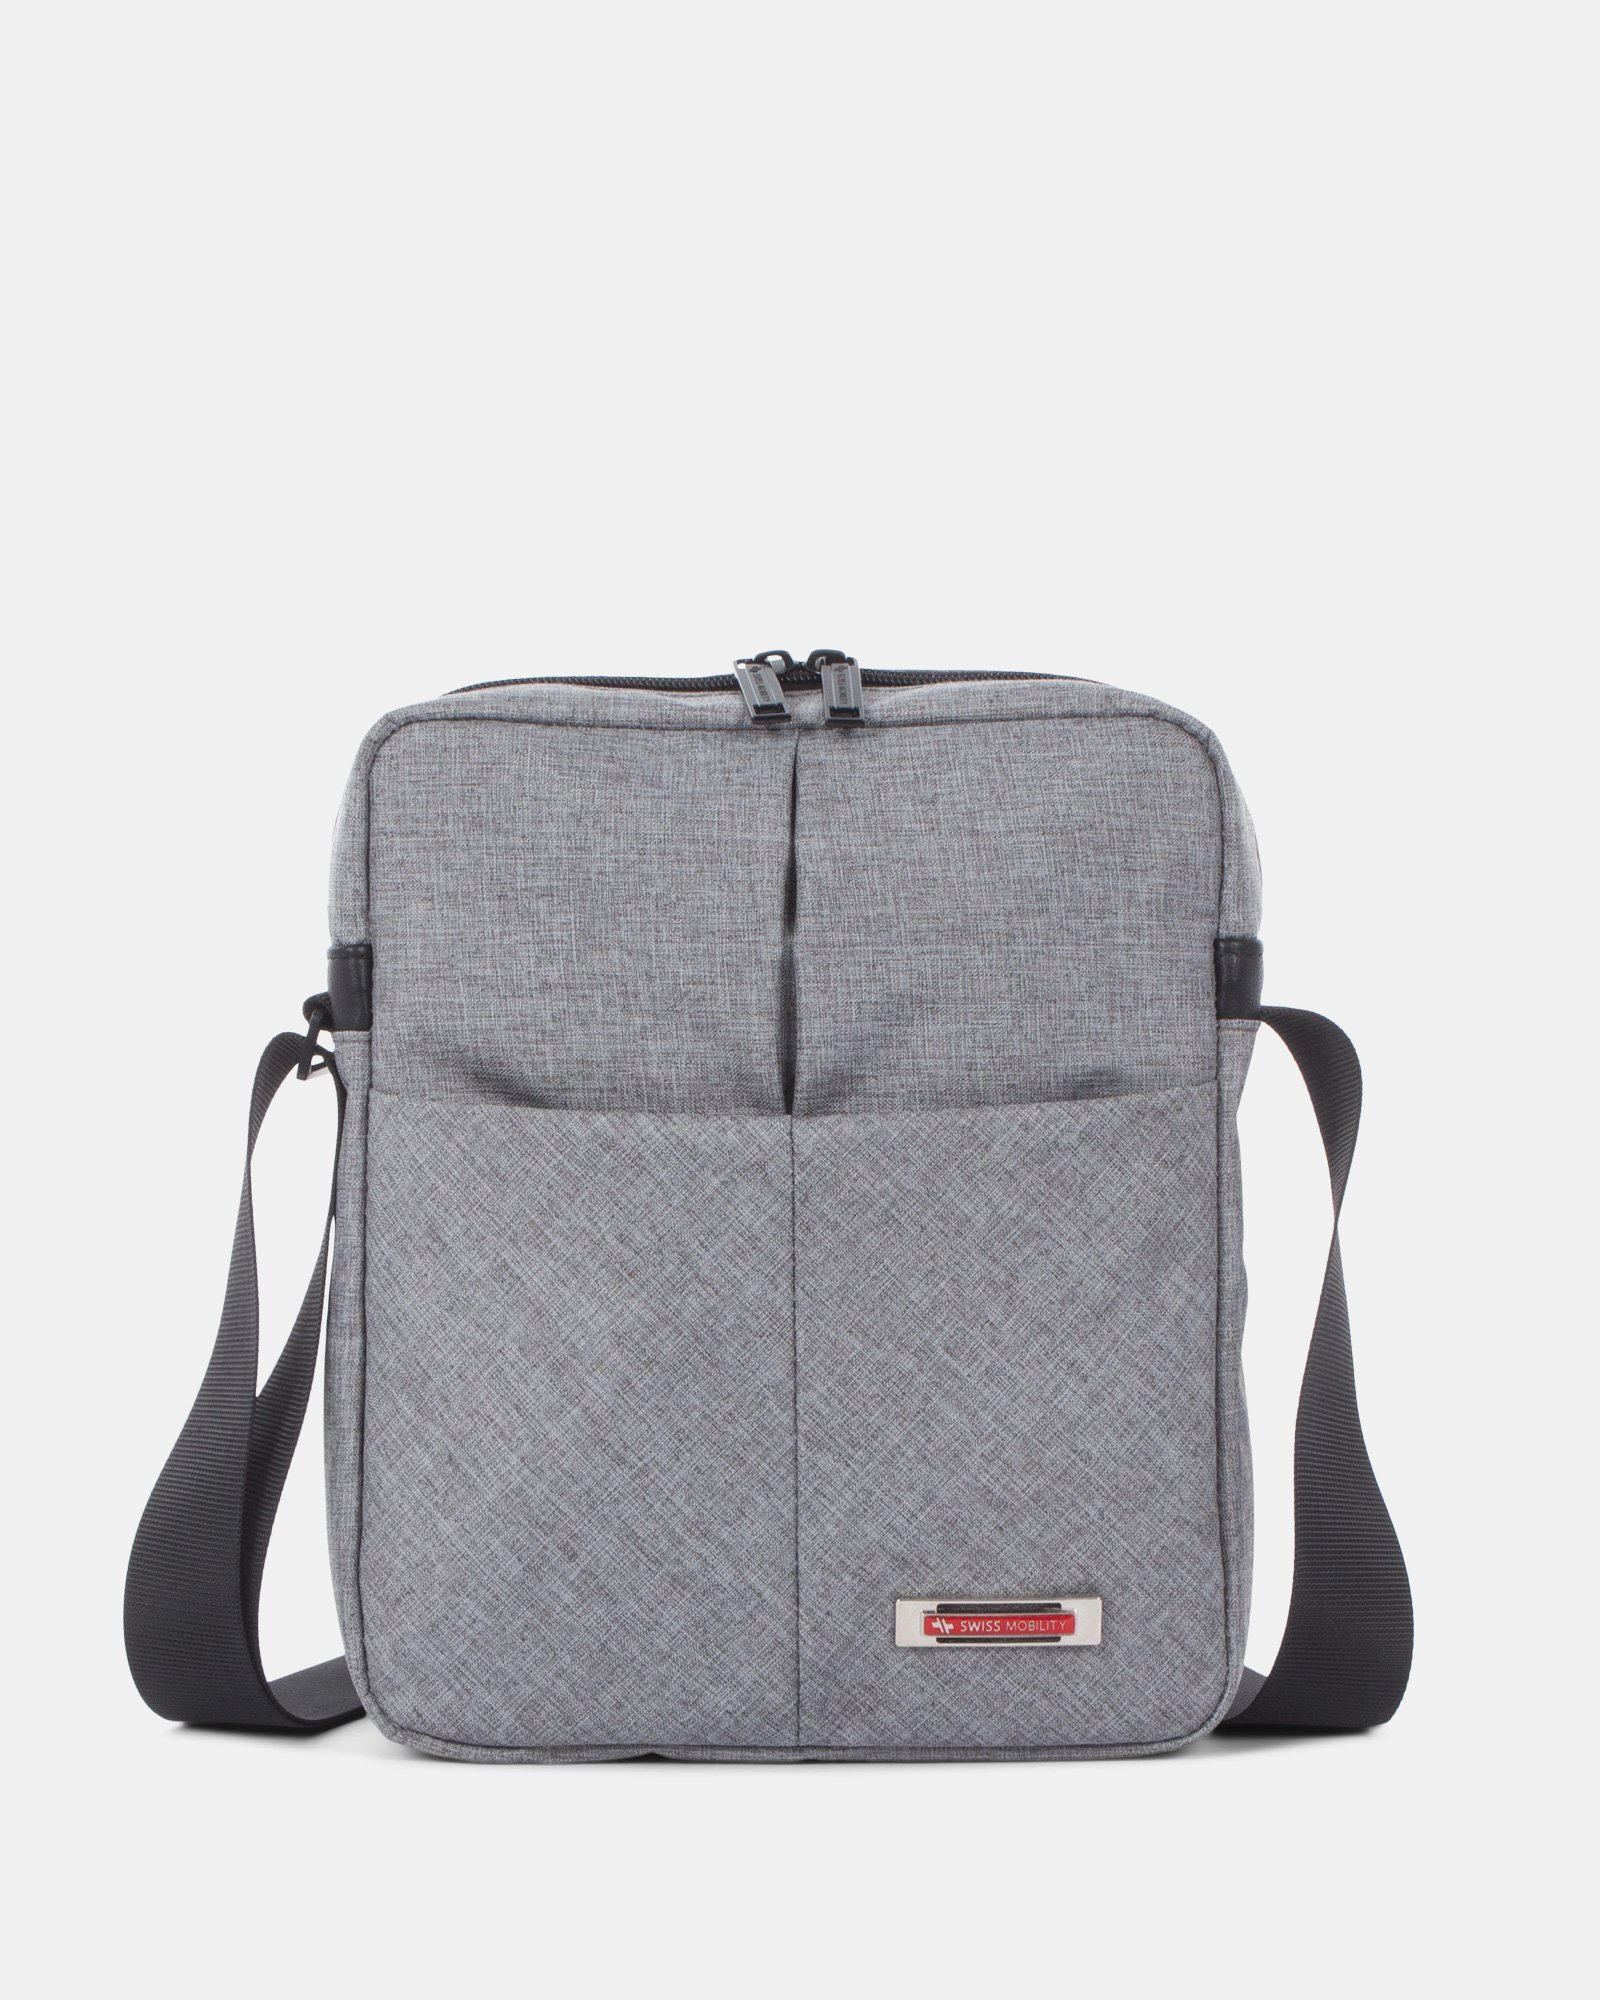 Sterling-Crossbody Bag - Swiss Mobility - Zoom